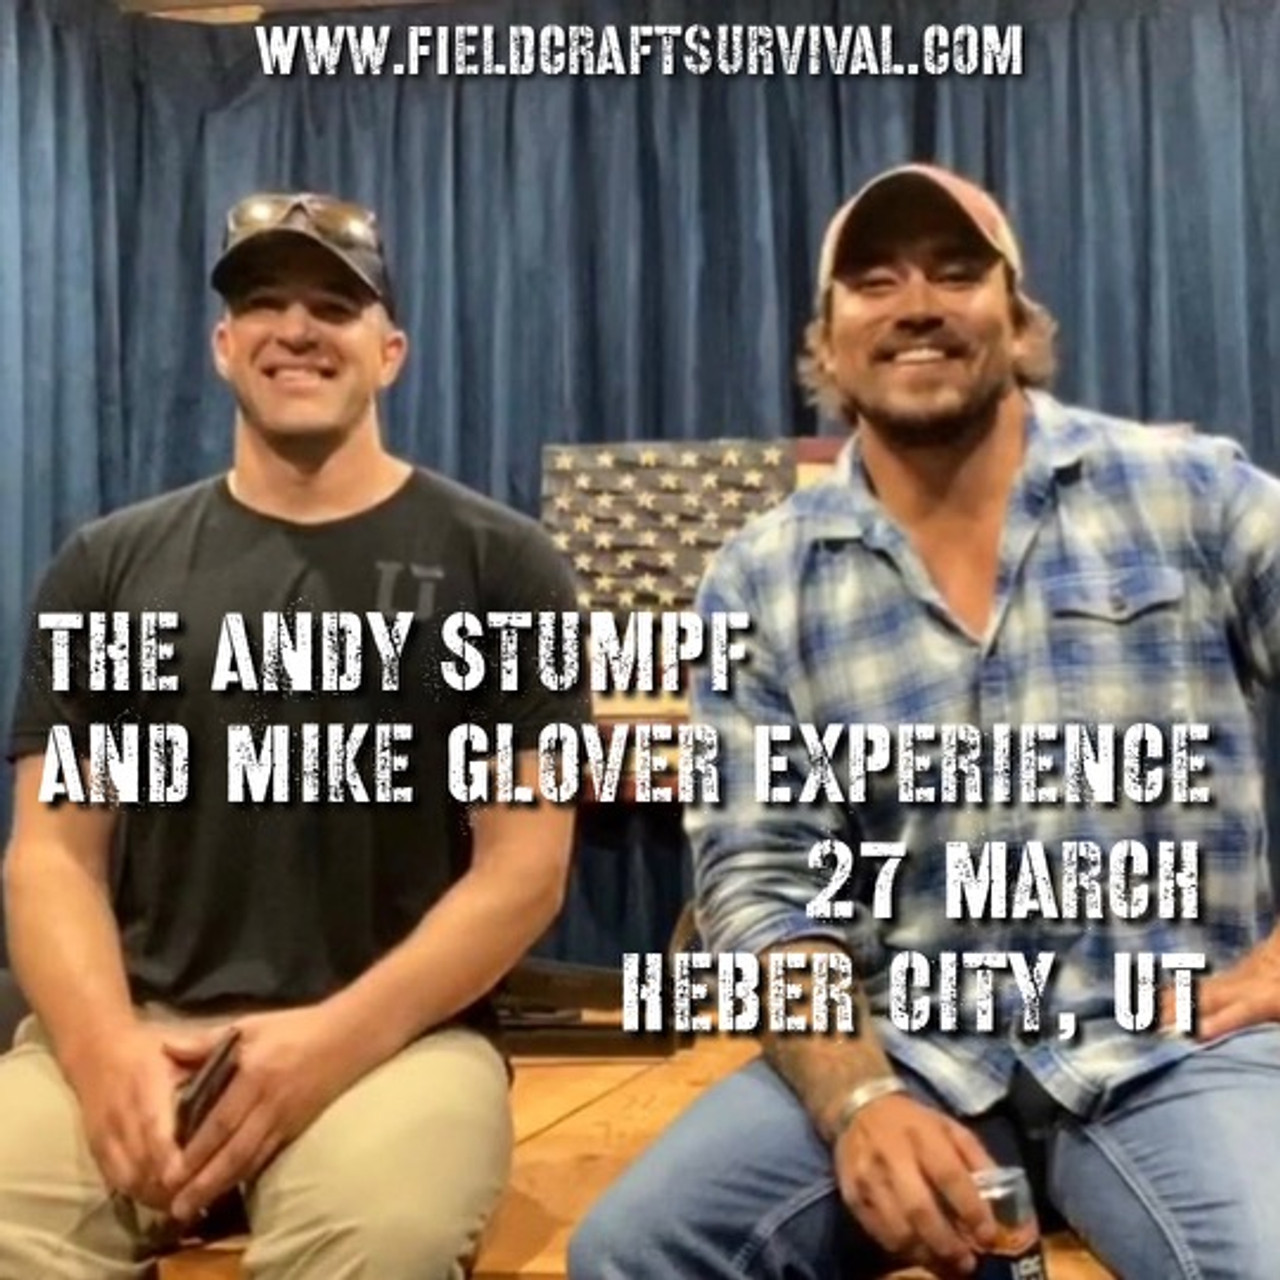 The Andy Stumpf and Mike Glover Experience: 27 March 2021 (Heber City, UT)